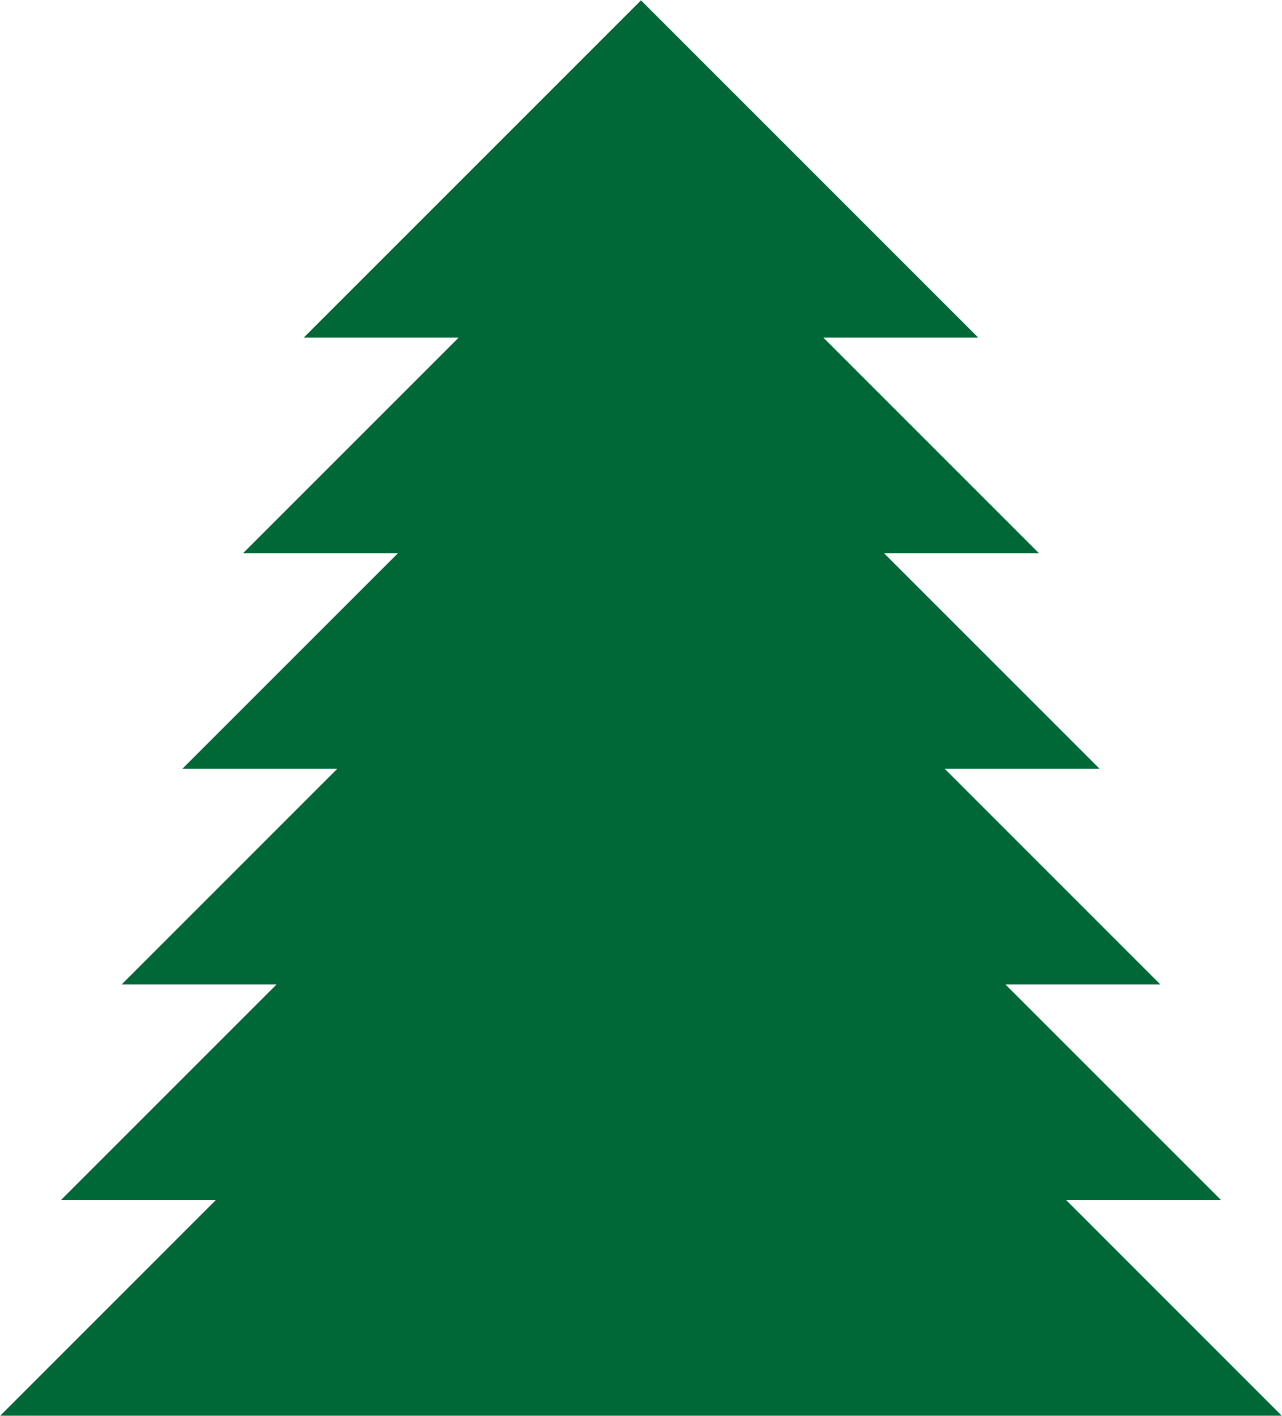 hight resolution of pine tree clipart a simple green tree